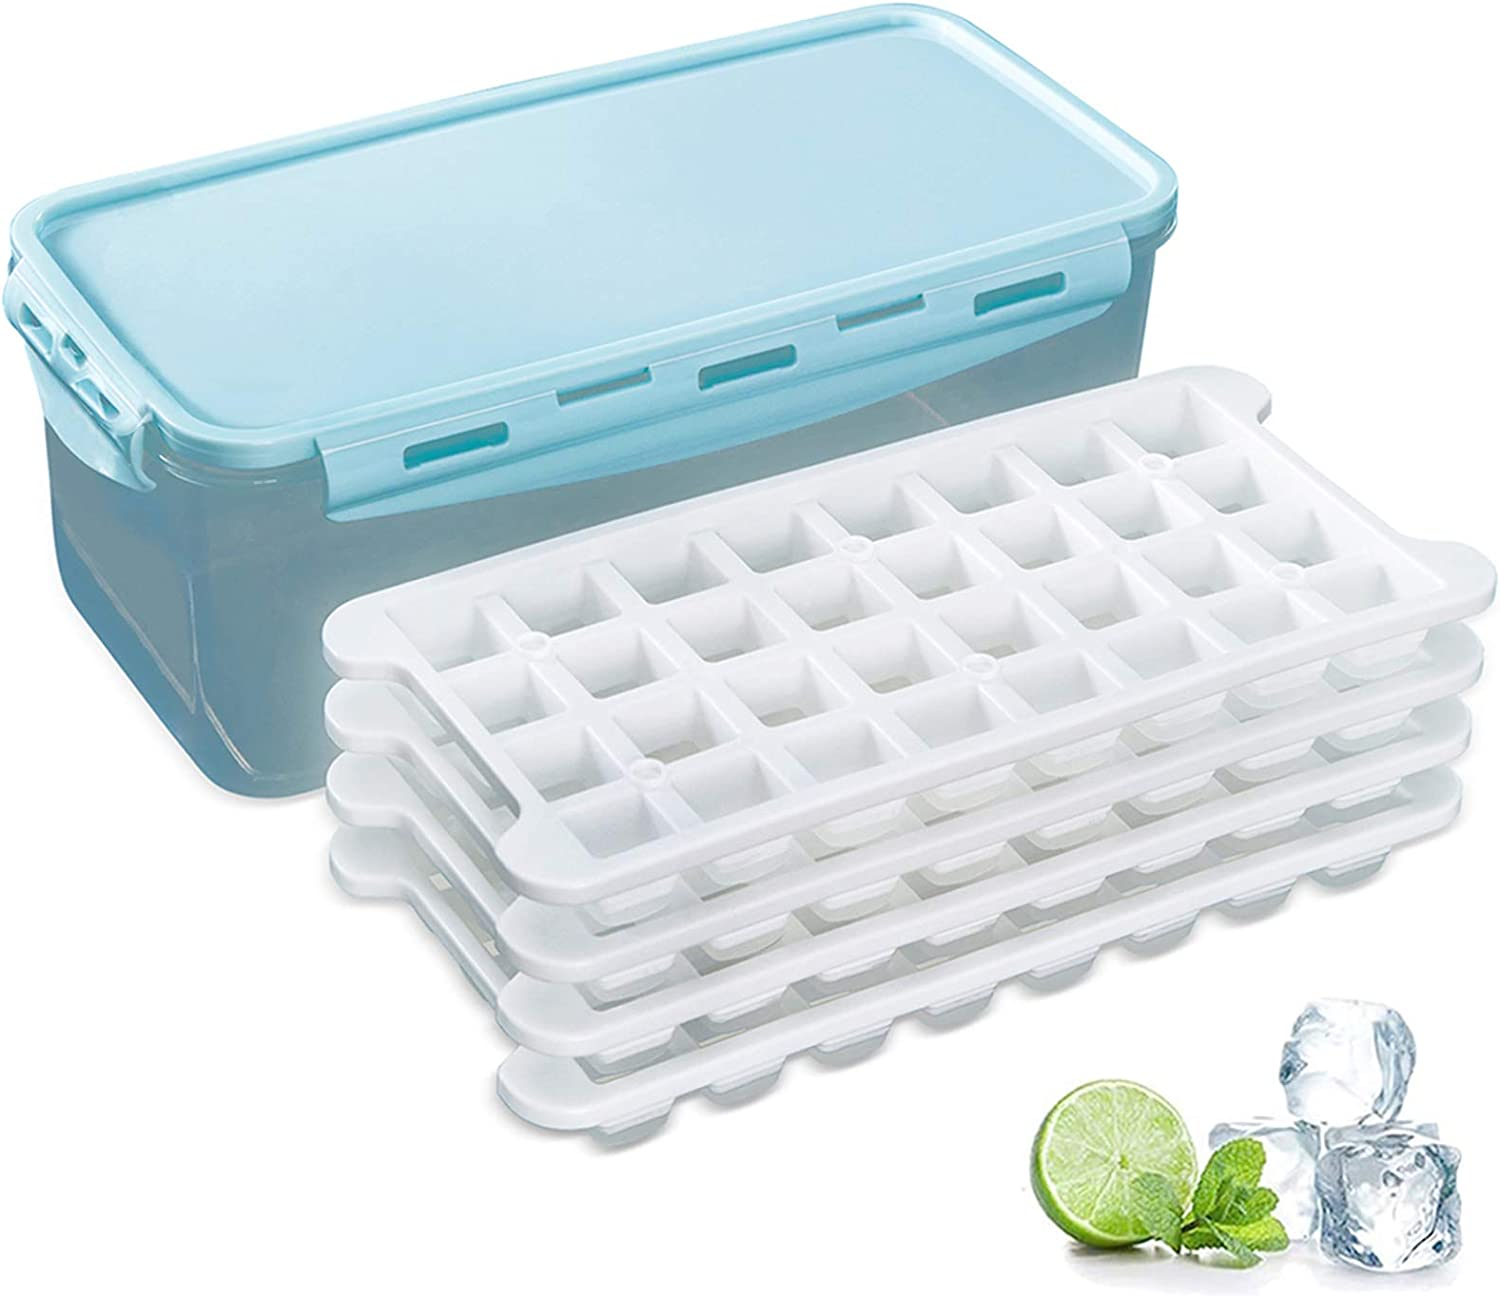 Silicone Ice Cube Trays and Ice Cube Storage Container Bin Set With Airtight Locking Lid, 4 Packs / 128 Trapezoid Ice Cubes